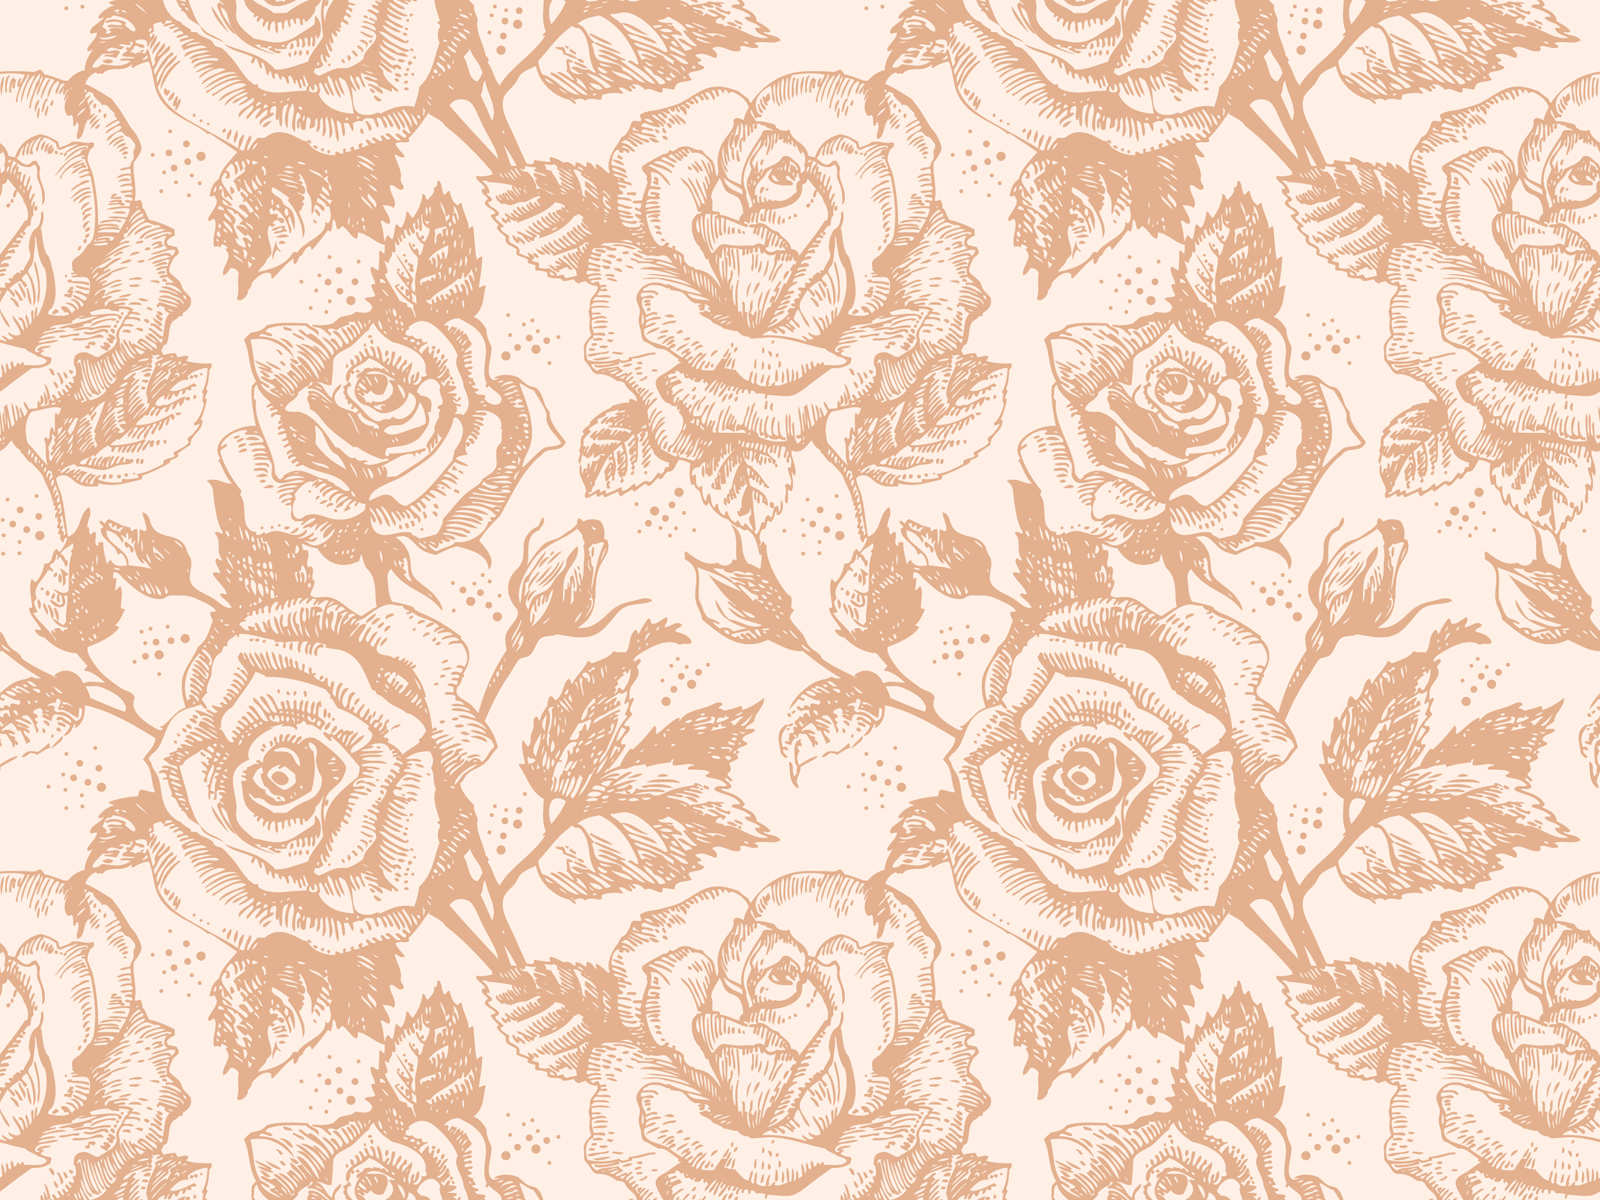 Retro Rose Flowers Backgrounds - Colors, Flowers, Pattern ... Flower Background Pattern Tumblr